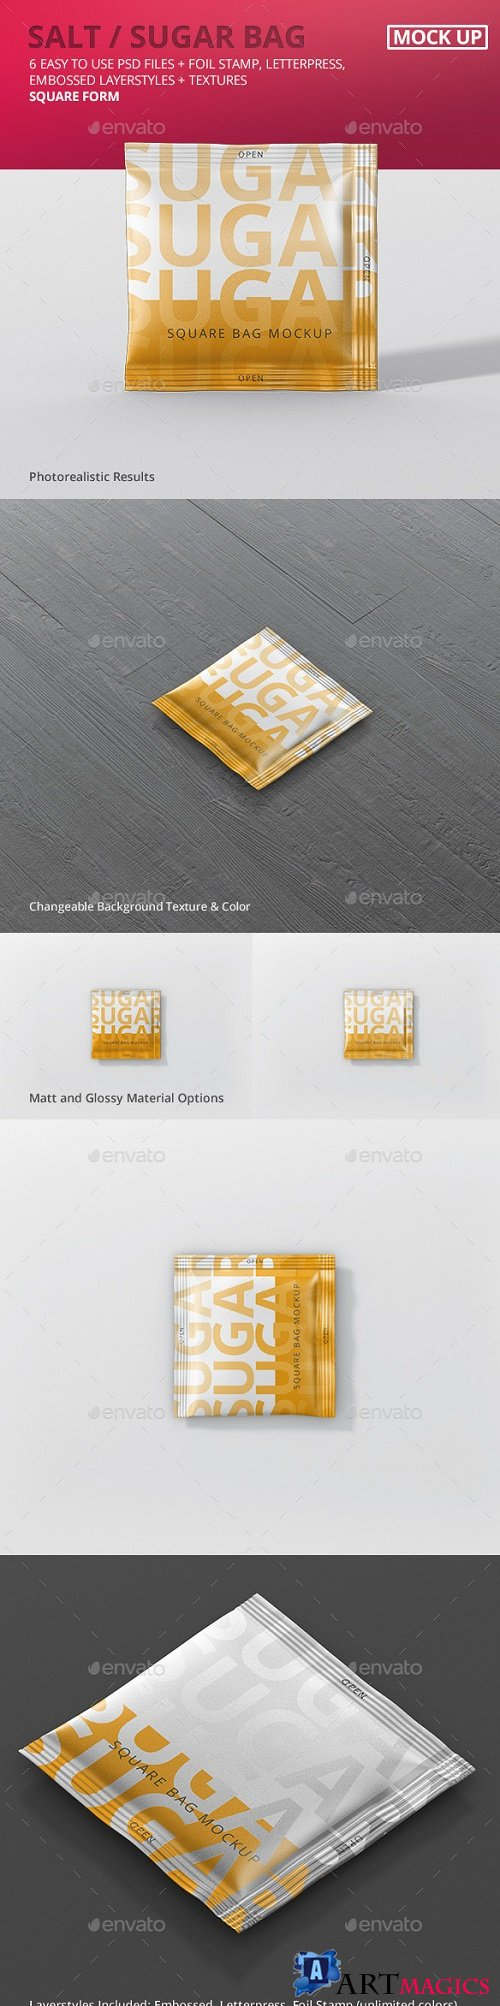 Salt / Sugar Bag Mockup - Square - 20620545